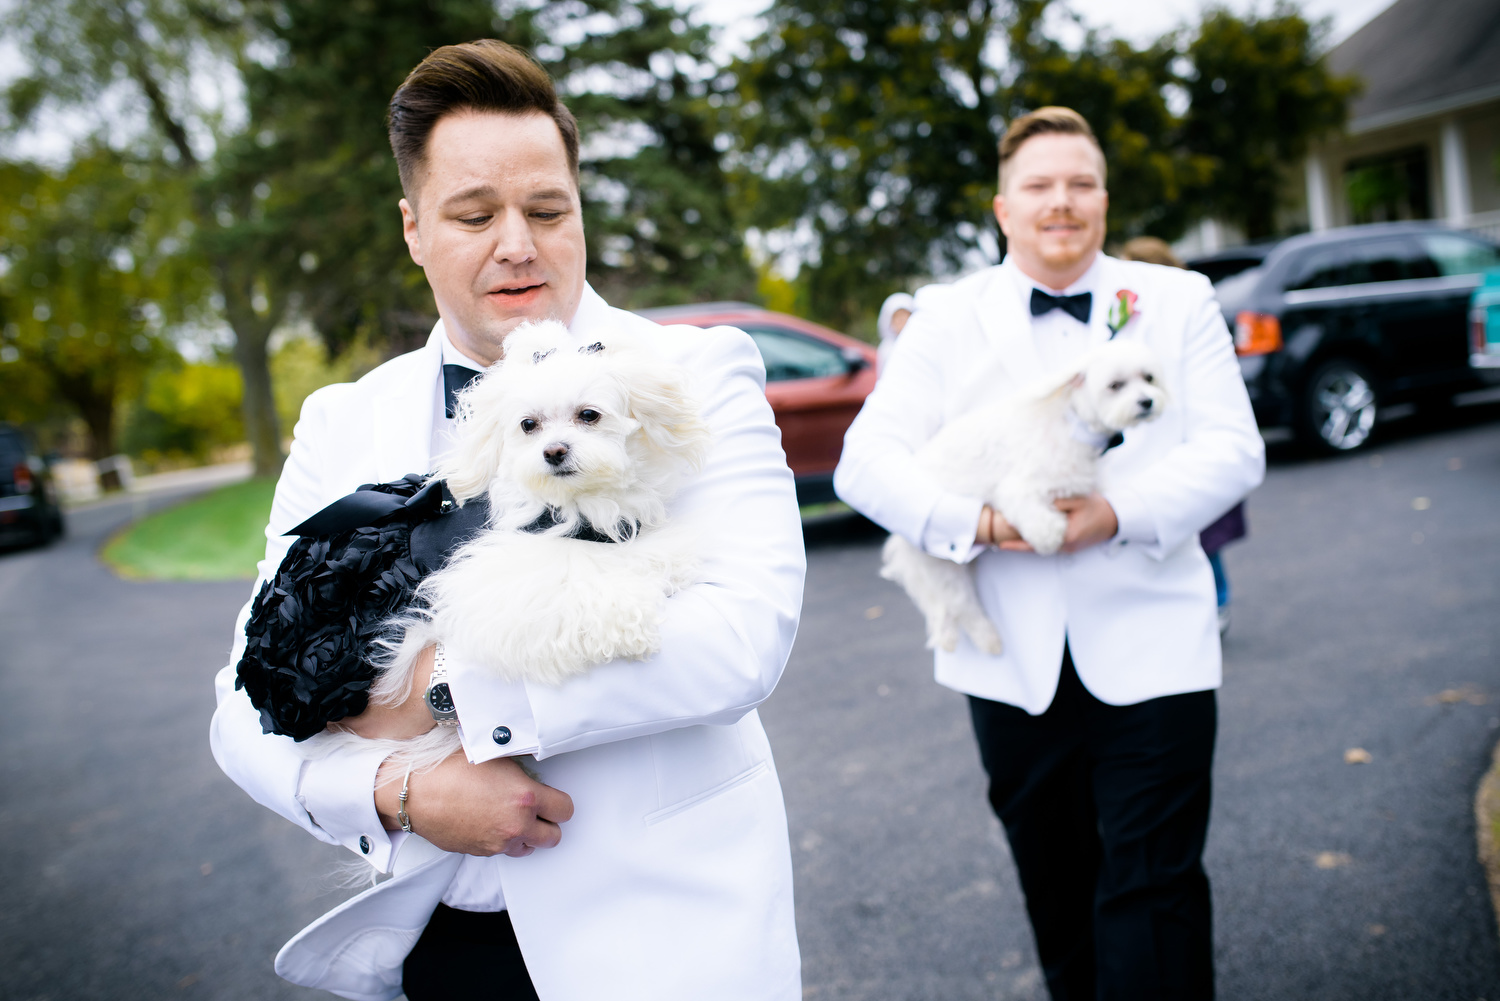 Grooms and their dogs during a same sex wedding at Heritage Prairie Farm.